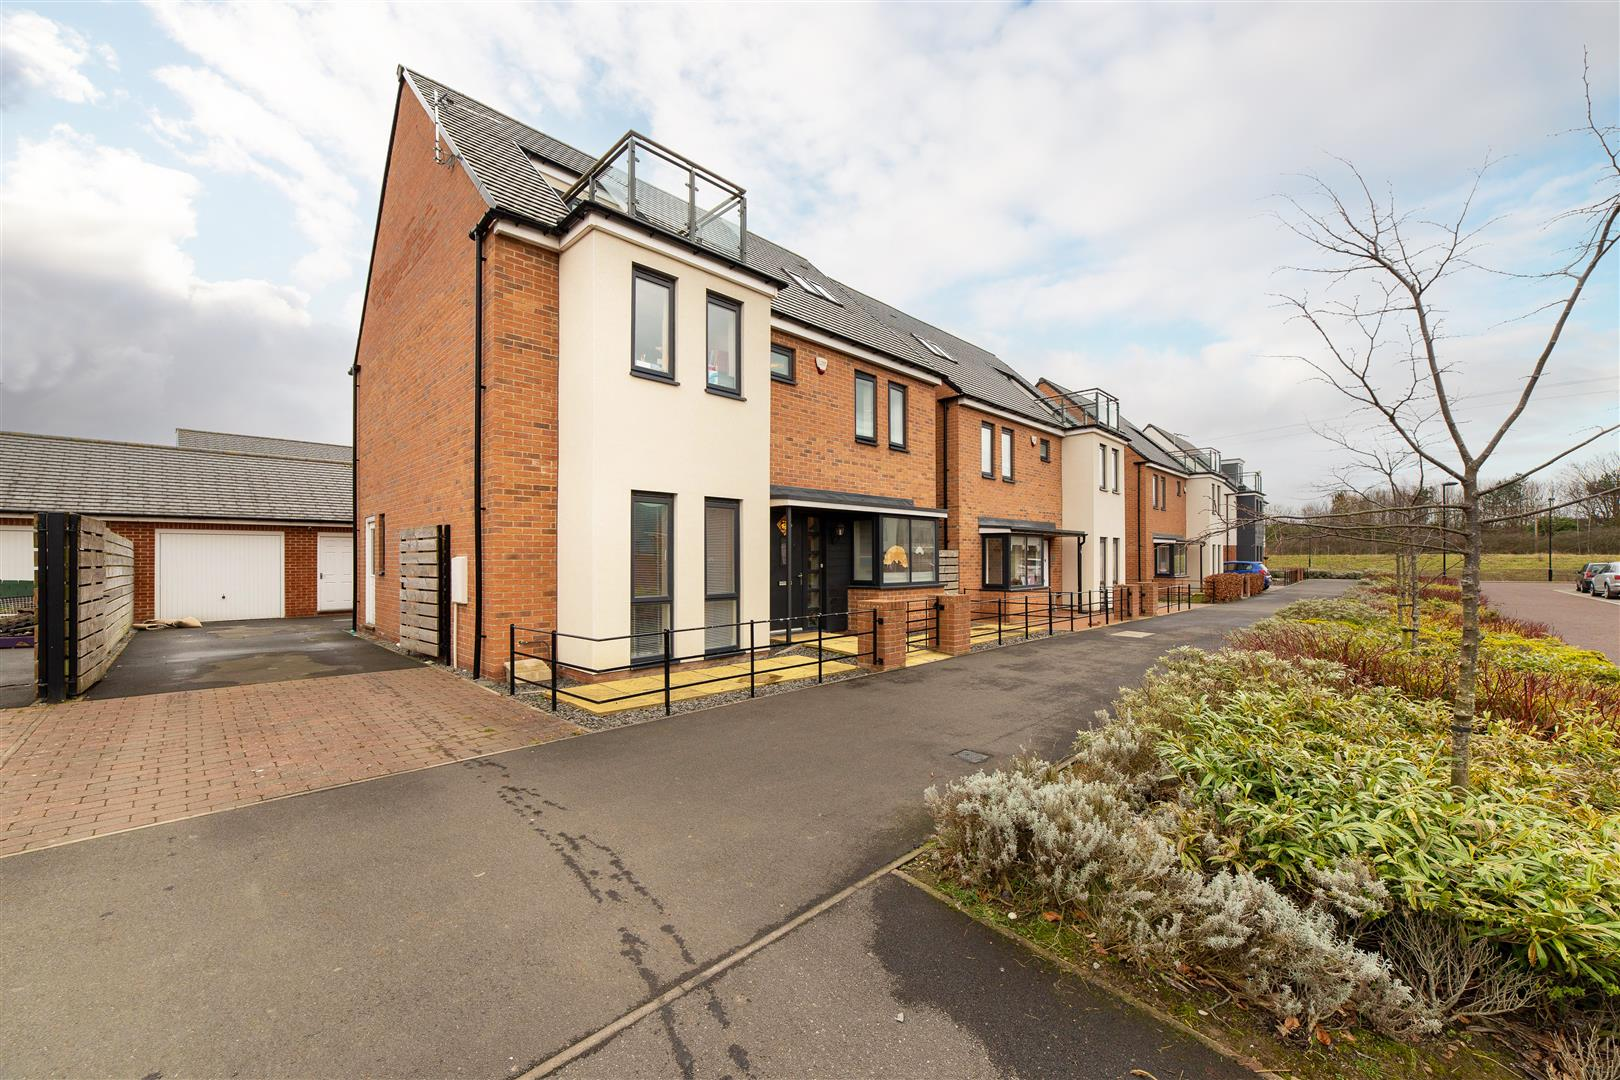 5 bed detached house for sale in Elford Avenue, Great Park  - Property Image 1